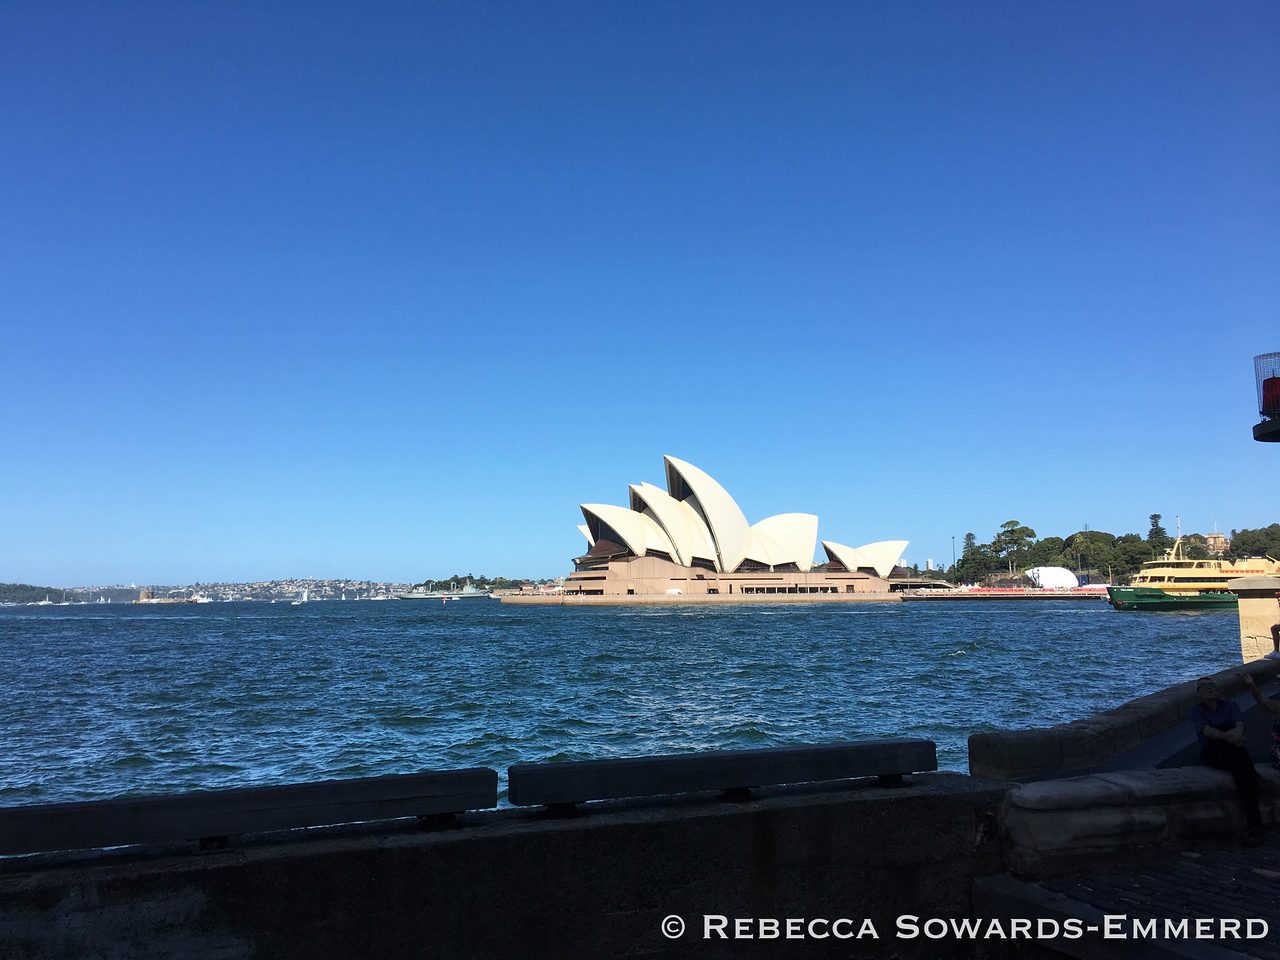 And eventually caught sight of the iconic opera house